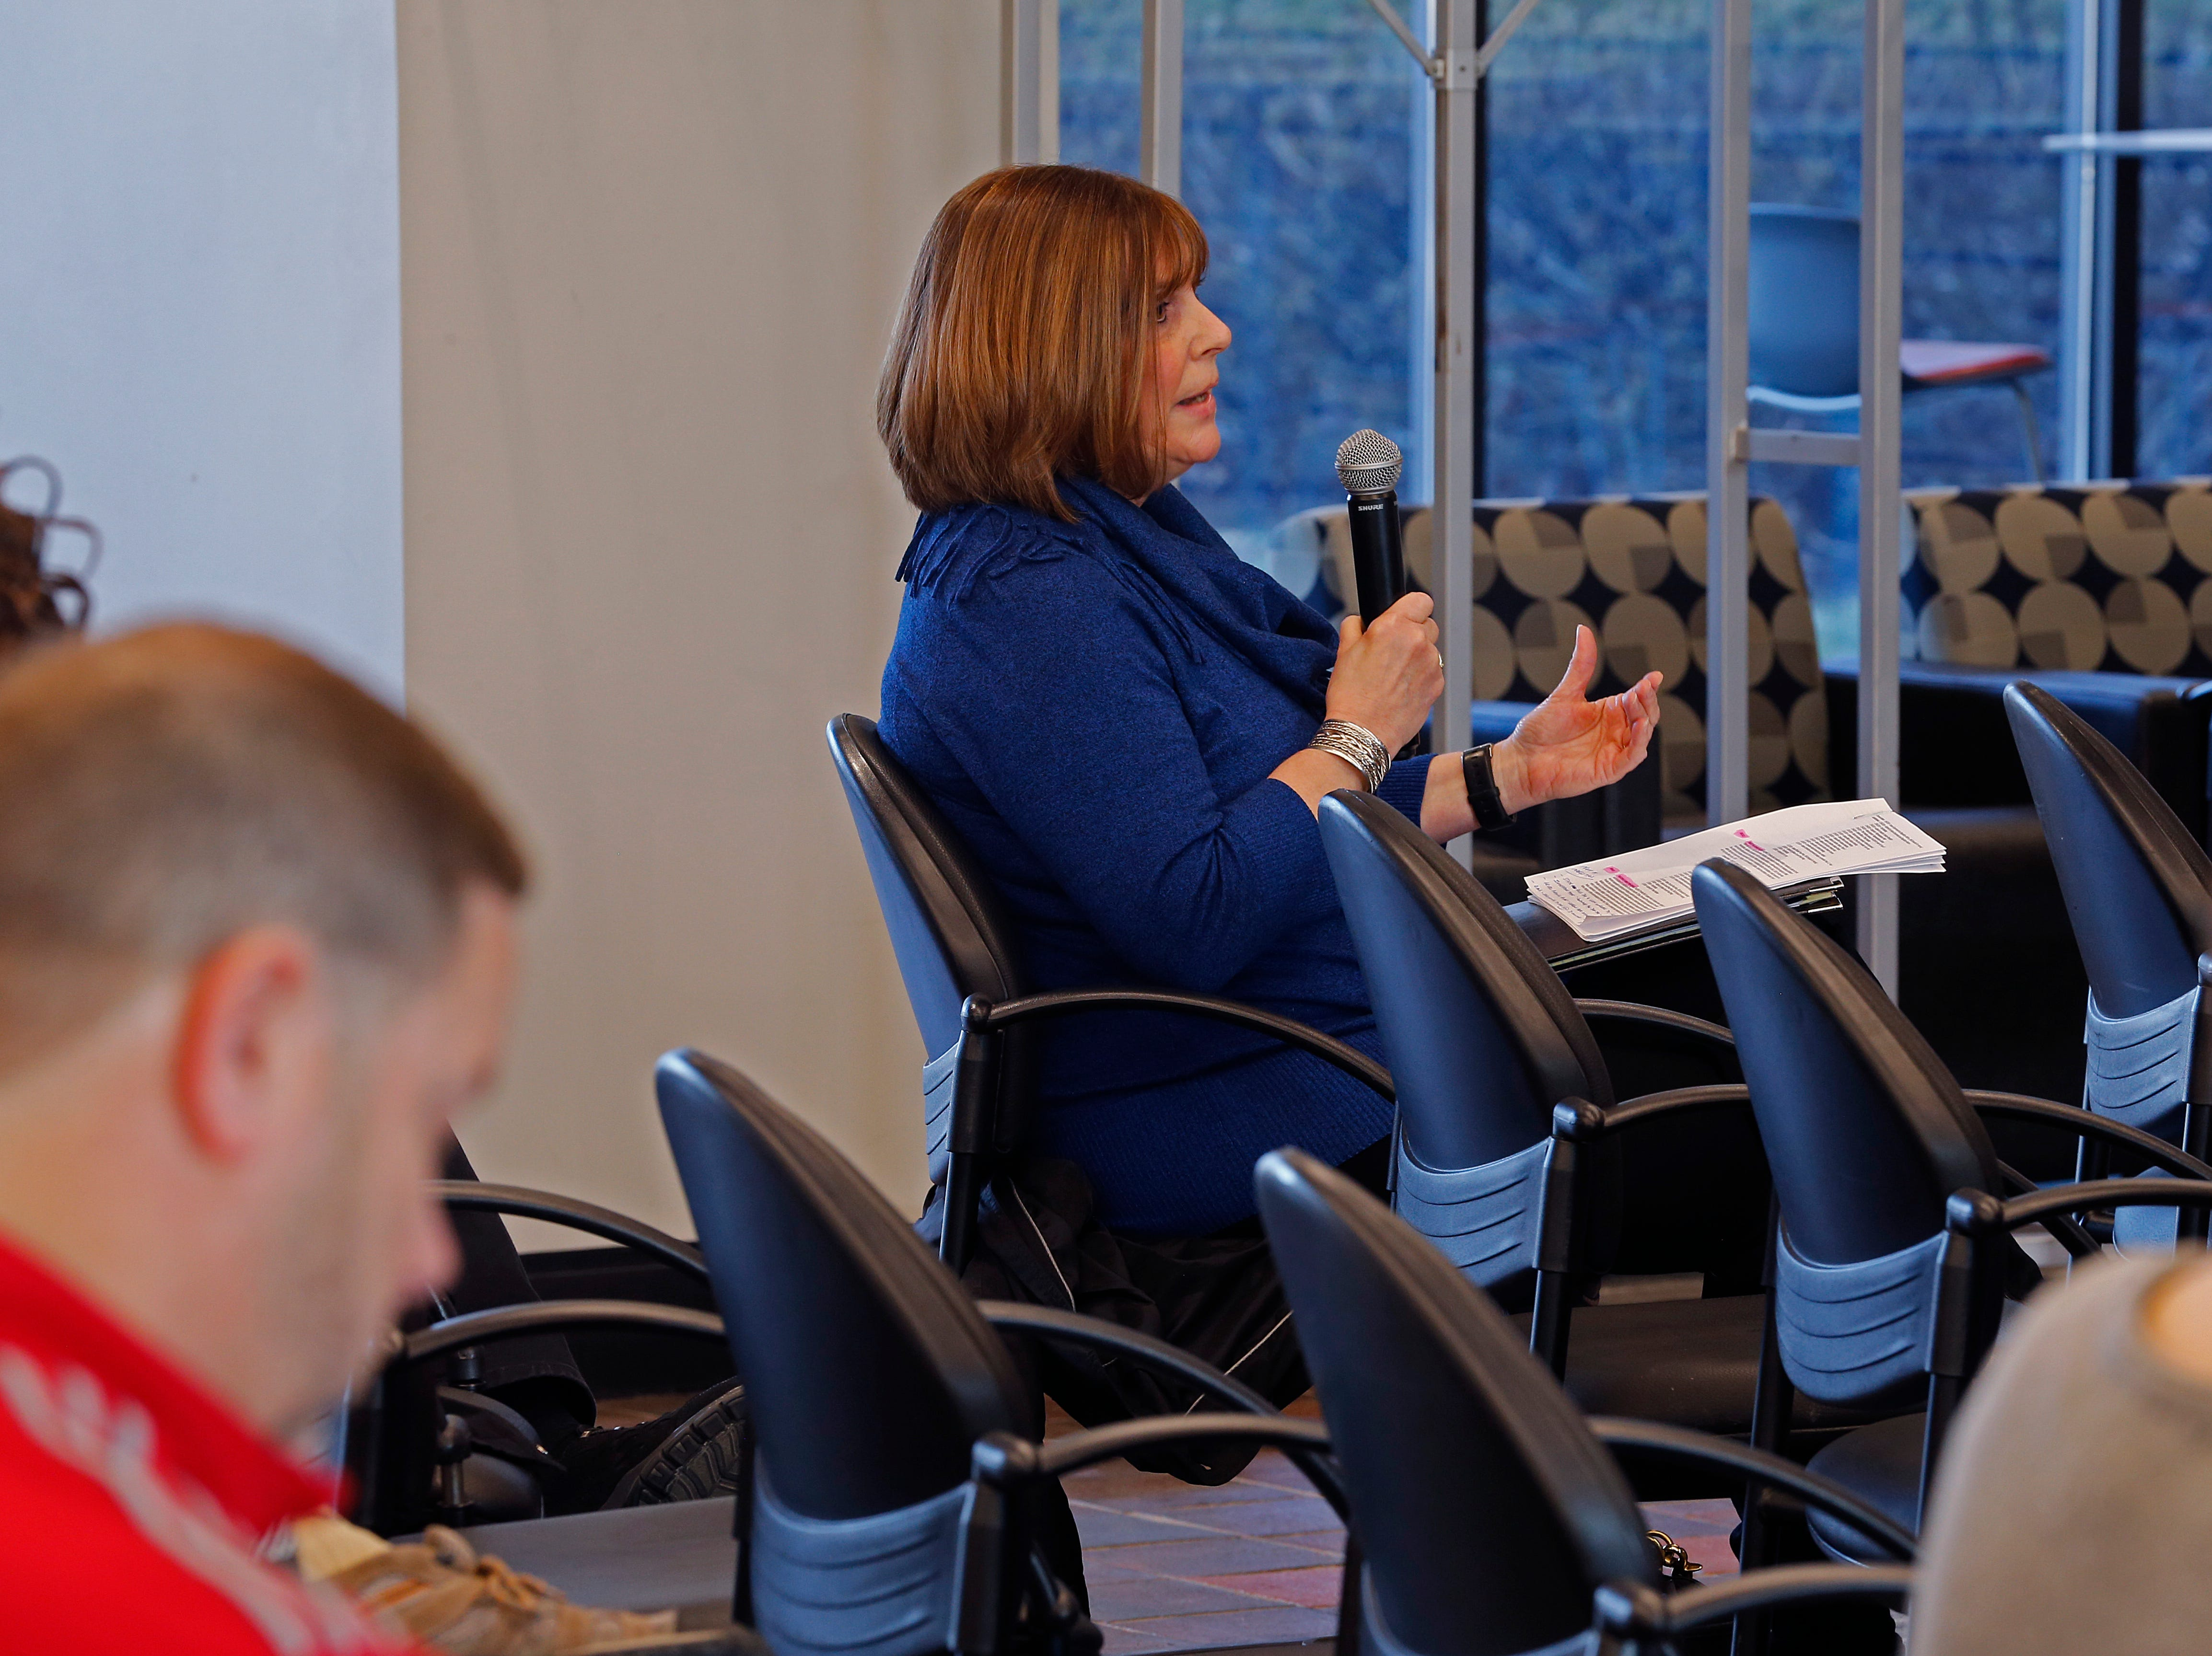 Mary Walker of the Wayne County Convention & Tourism Bureau asks a question during the Legislative Forum on Friday, March 22, 2019, at IU East.